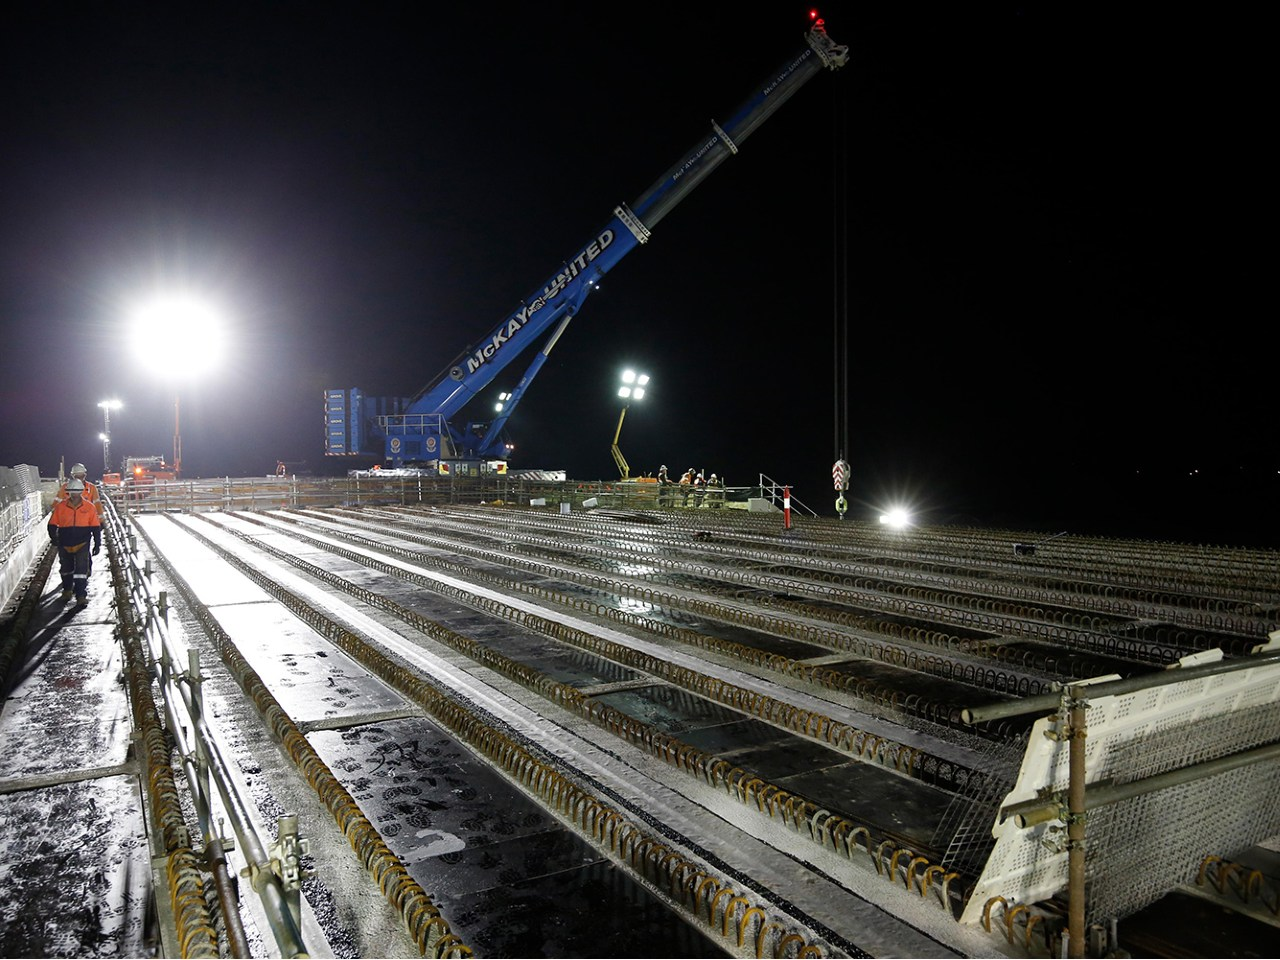 All beams are placed on top of the piers. The beams are then joined with concrete to create a bridge deck, providing the foundation for the new road